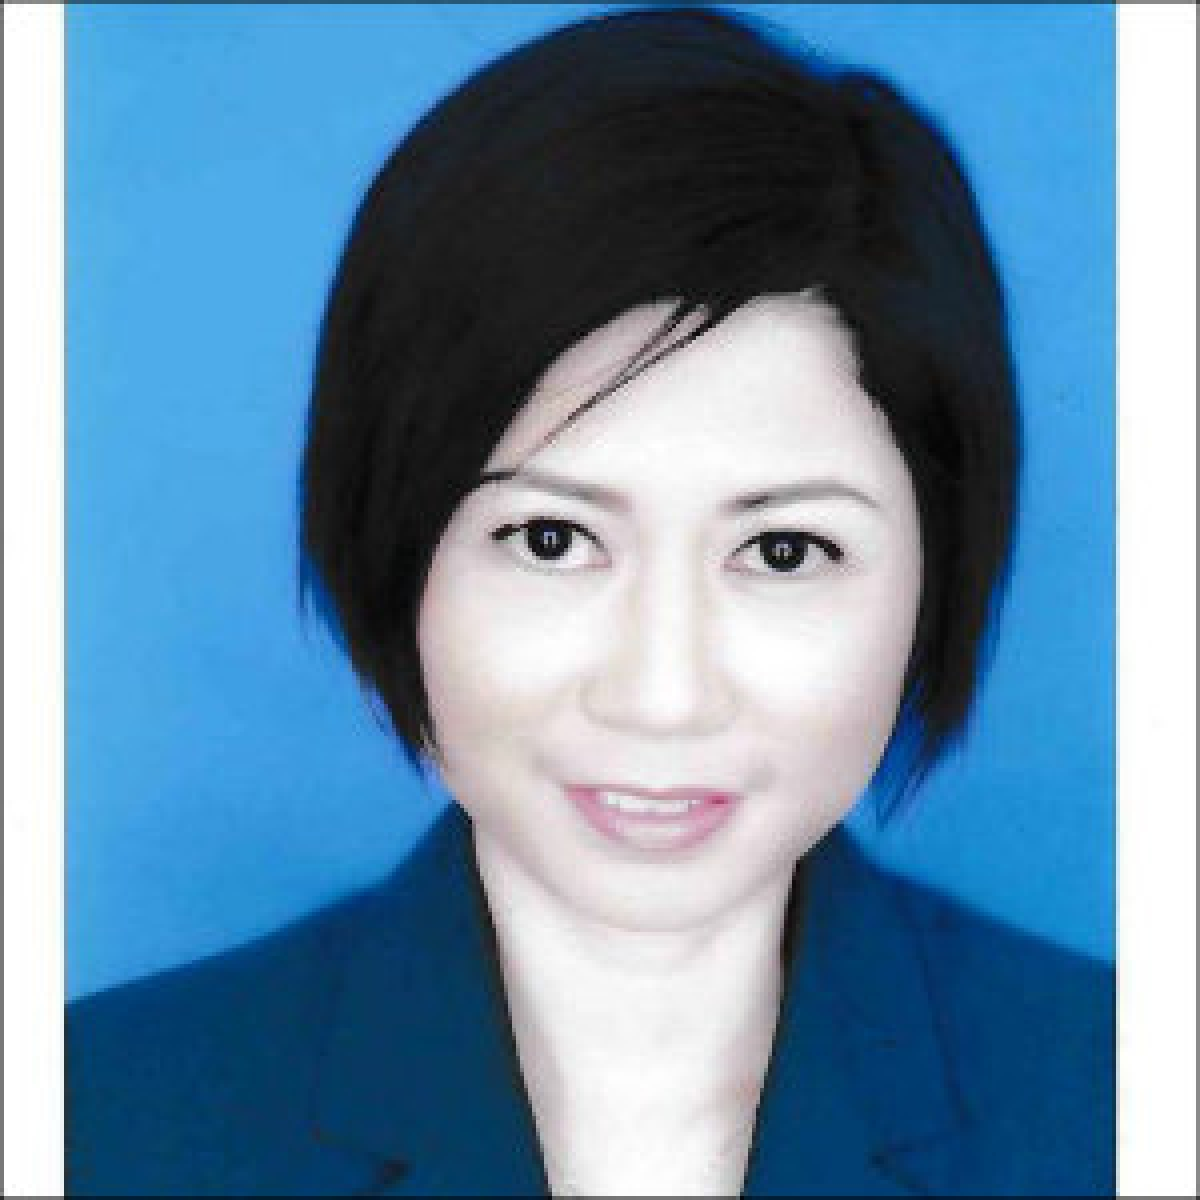 Amagi appoints Stephanie Lee to lead expansion In APAC